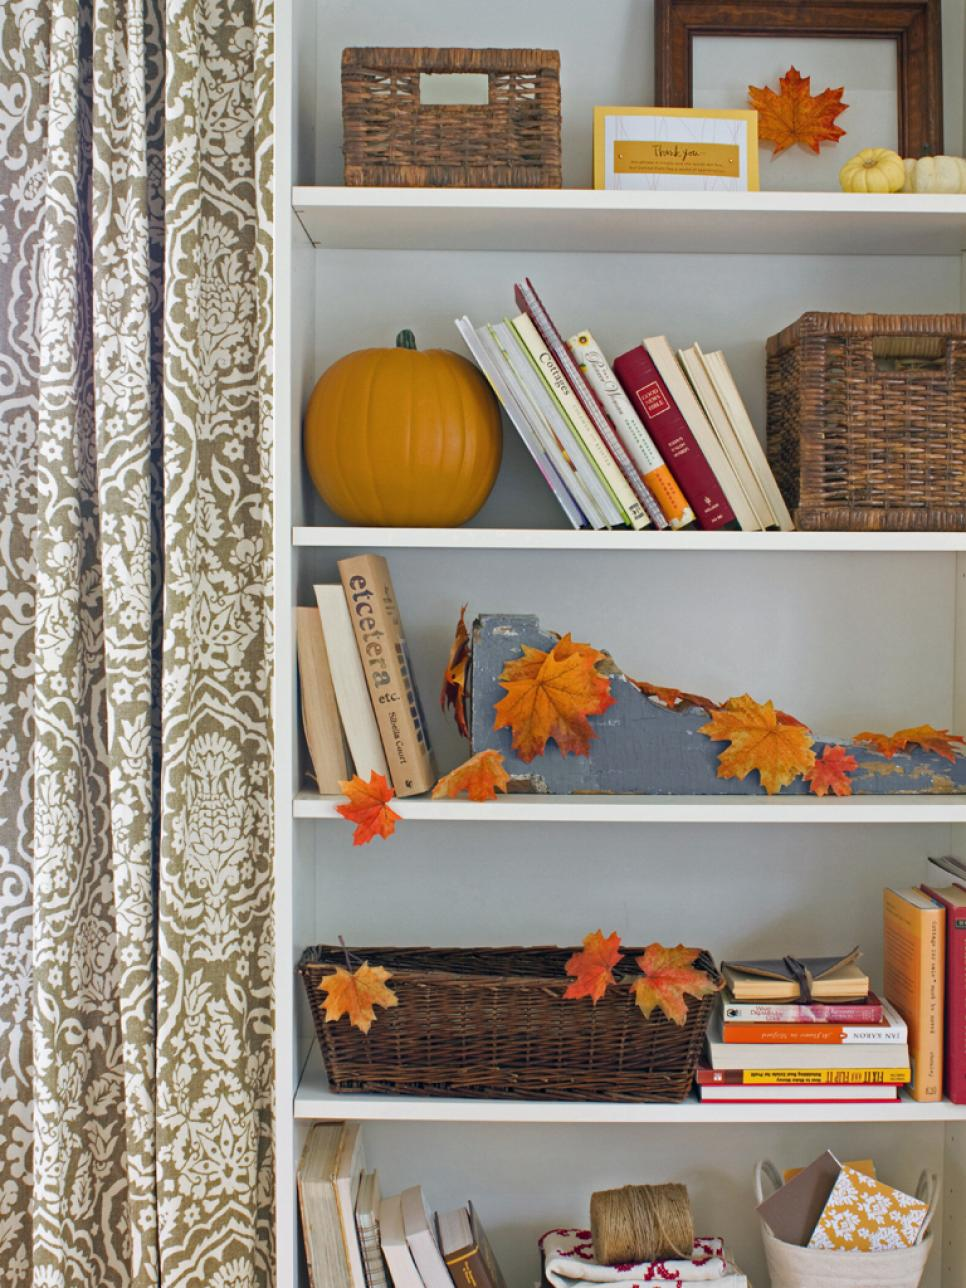 12 ways to add harvest decor to your home hgtv - Home Decor Designs